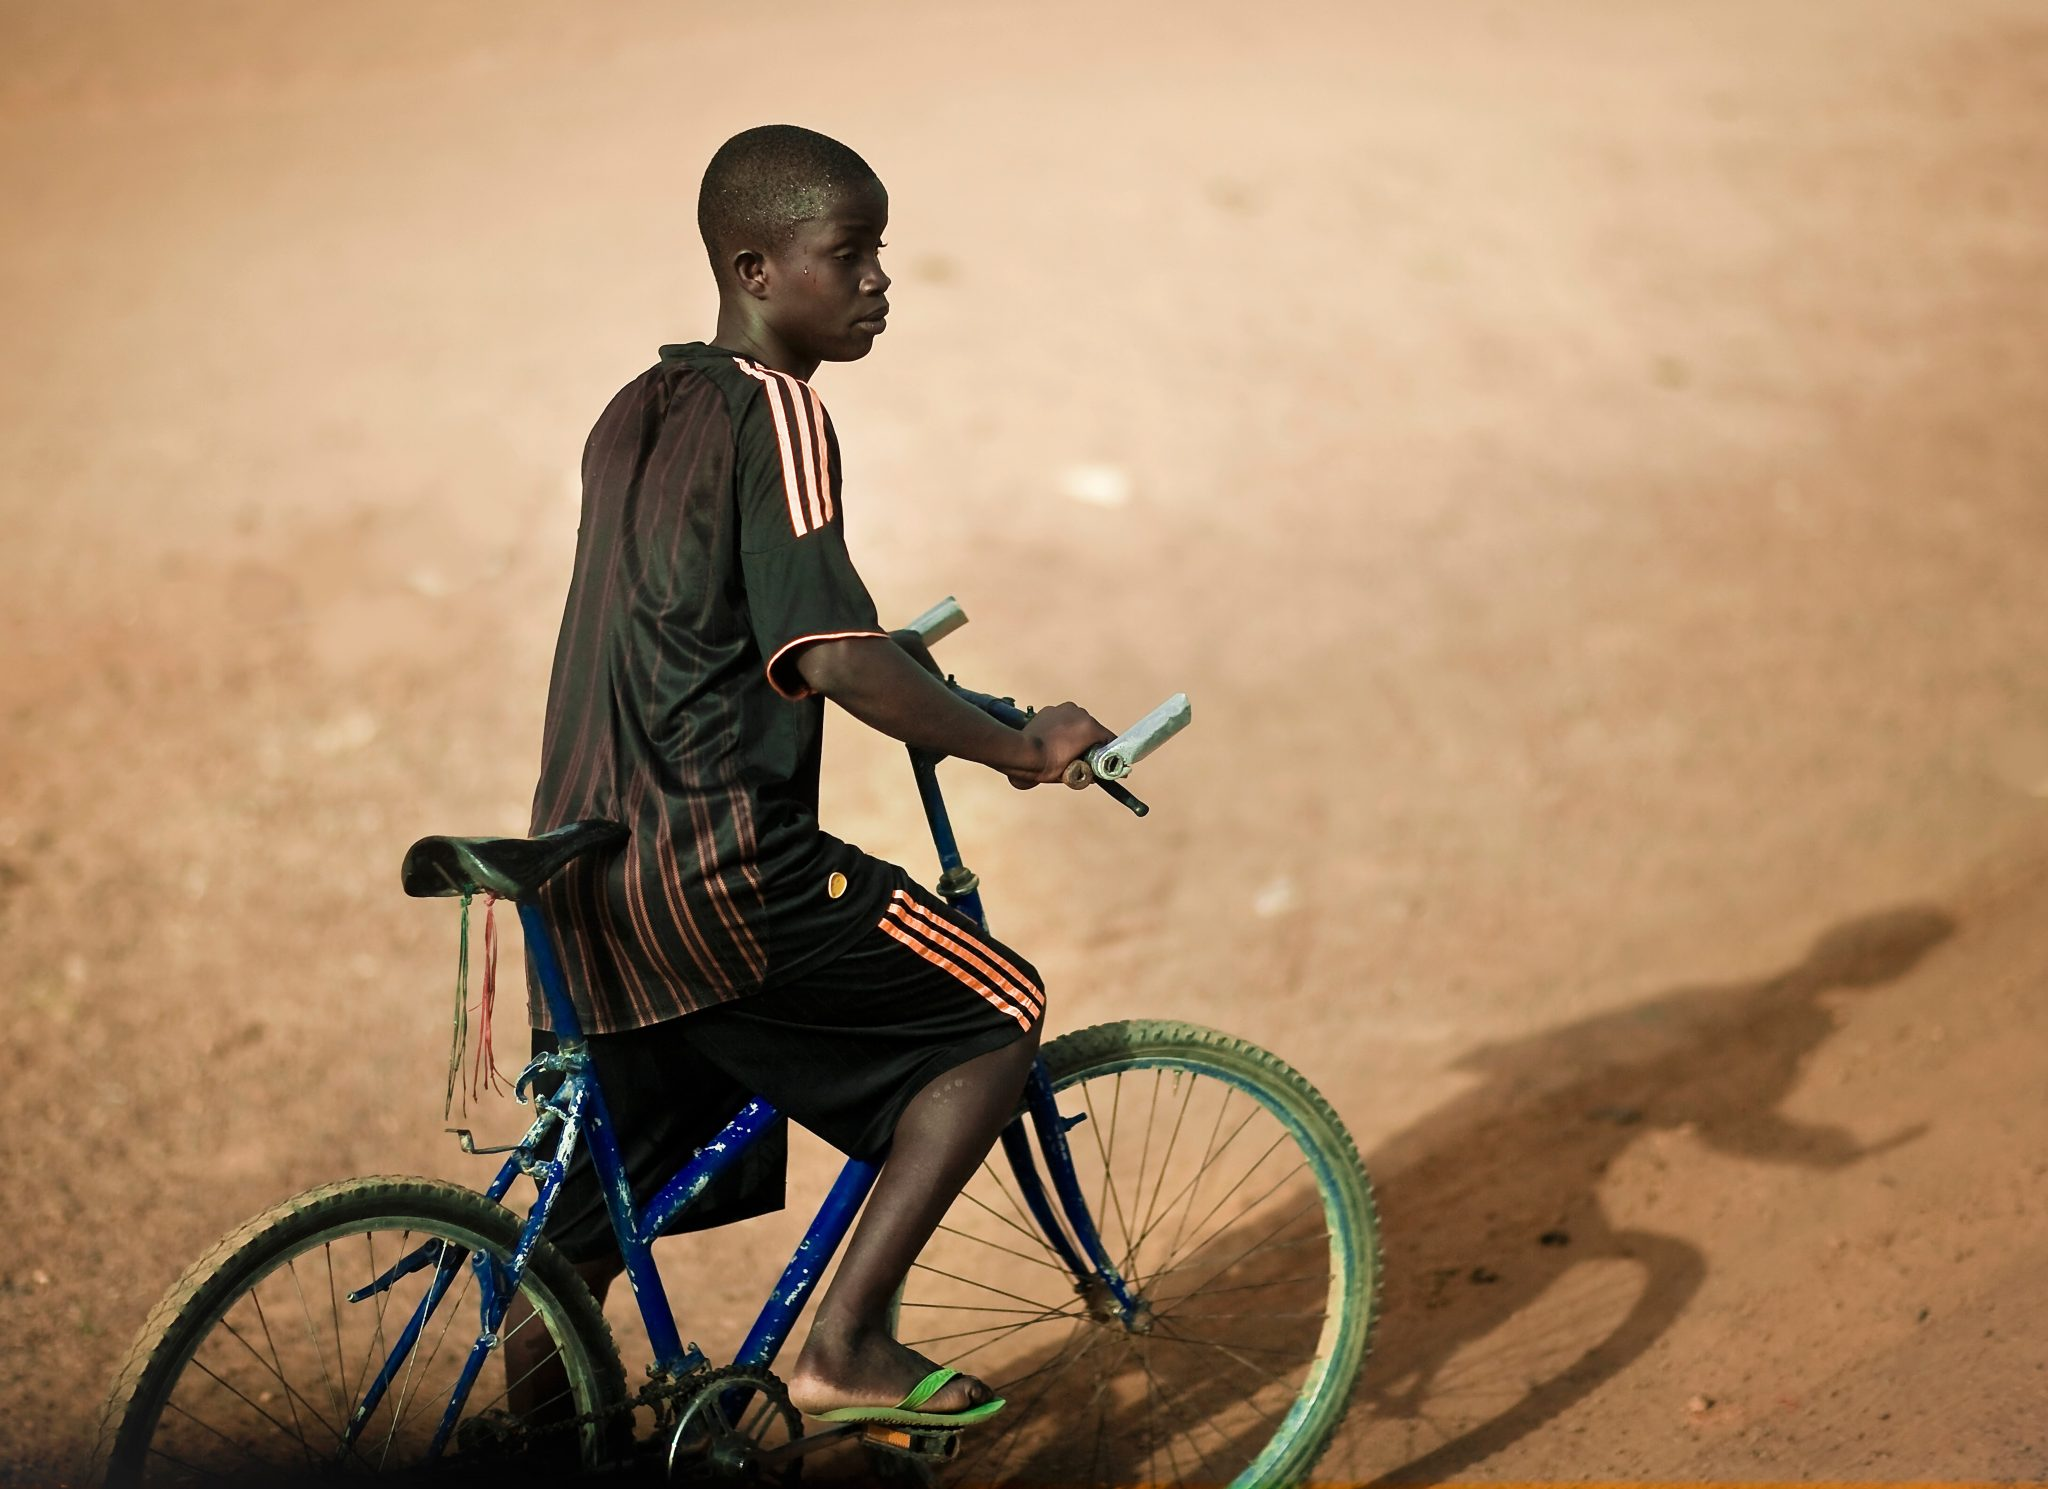 Boy on Bicycle, Podor